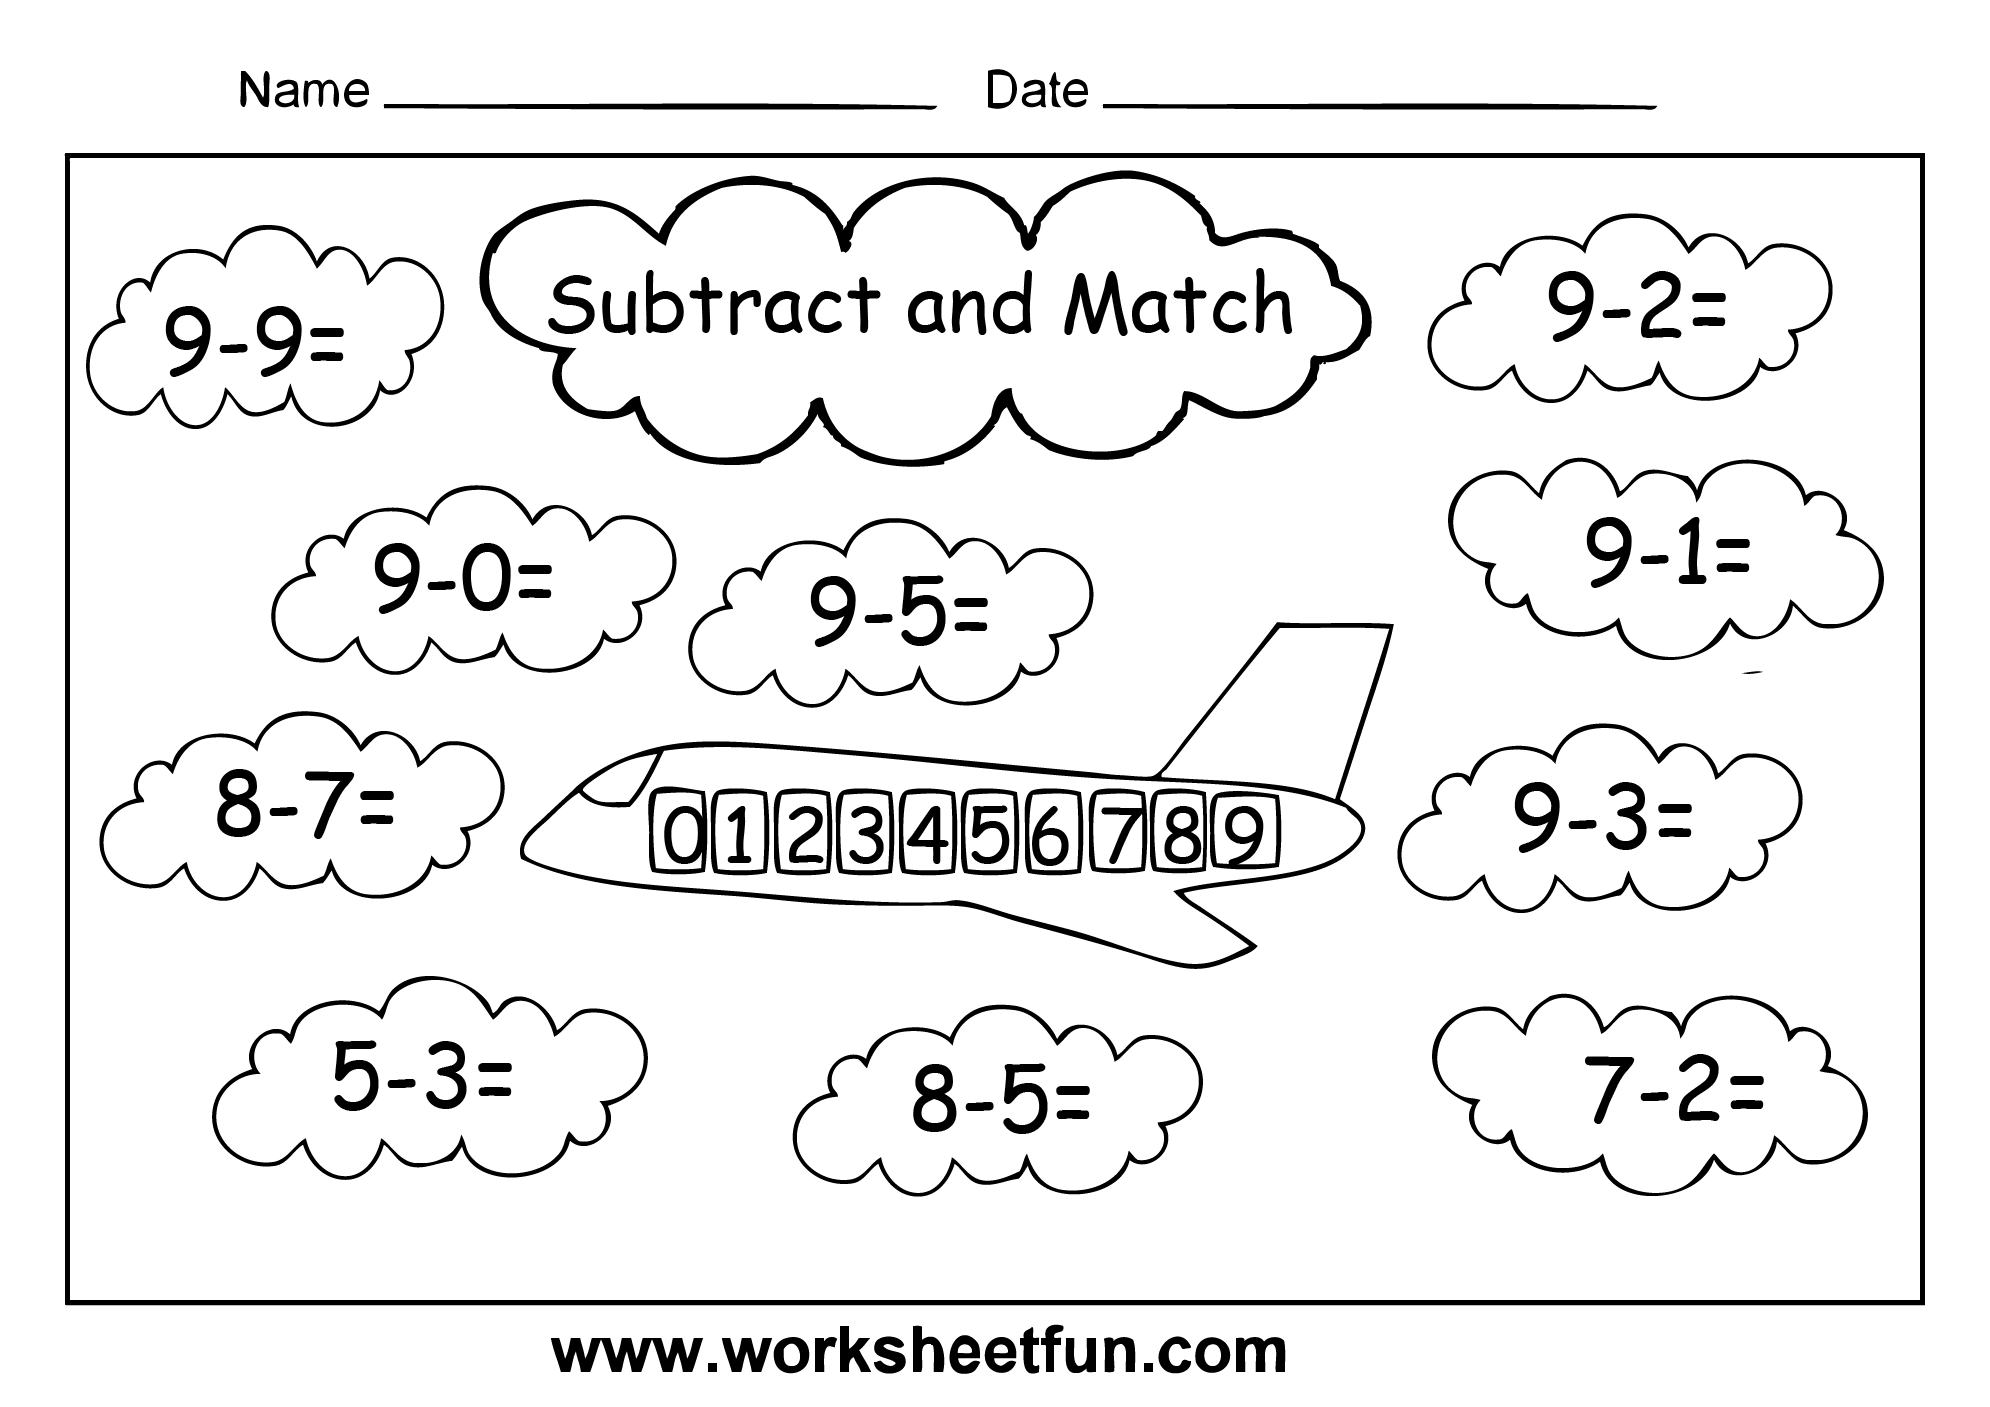 Subtraction 4 Worksheets 1st Grade Math Worksheets Subtraction Worksheets Kindergarten Addition Worksheets